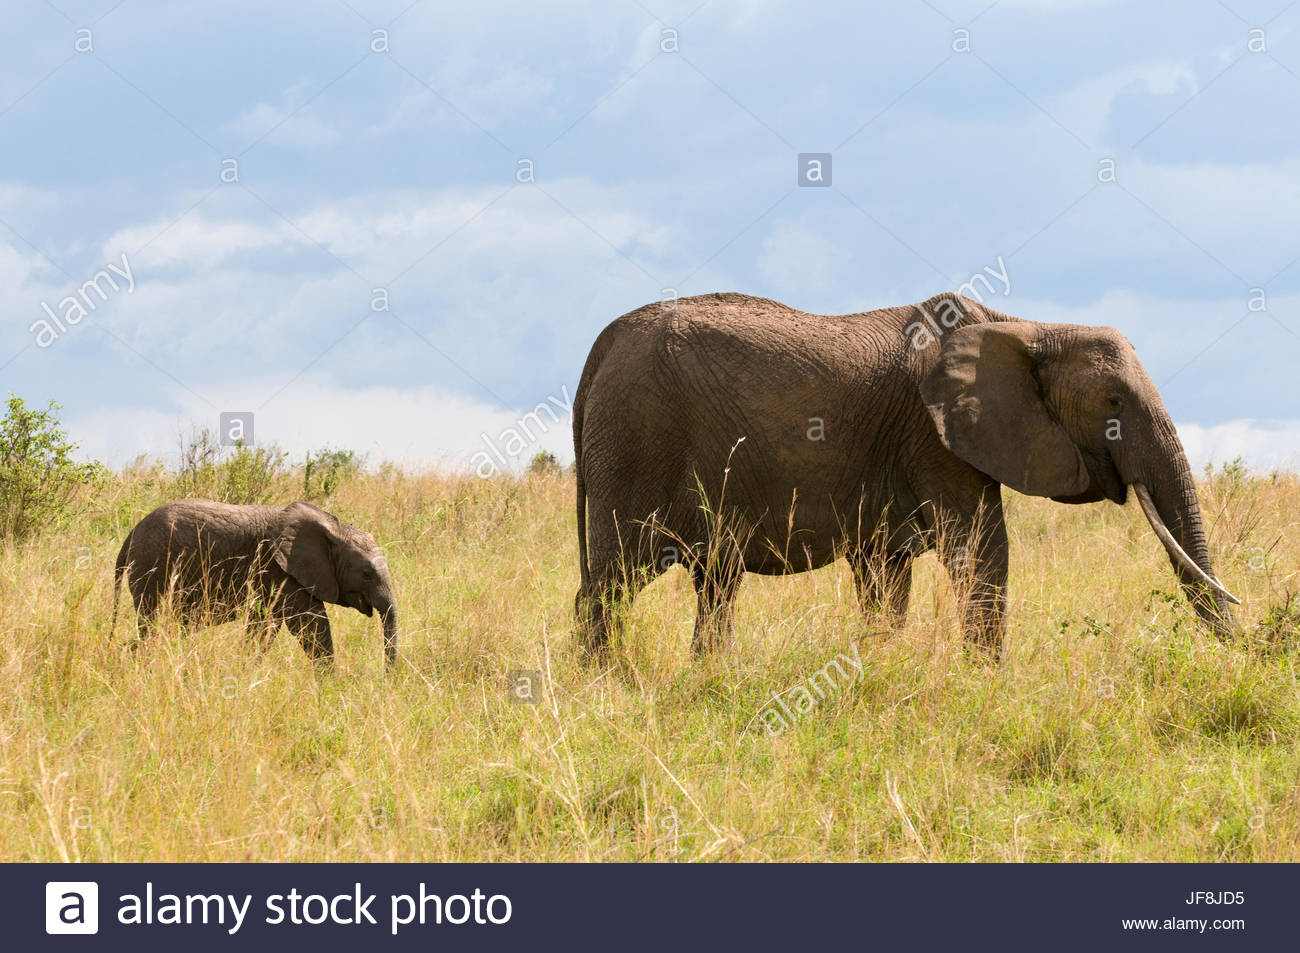 An African elephant calf, Loxodonta africana, following its mother in the tall grass. Stock Photo